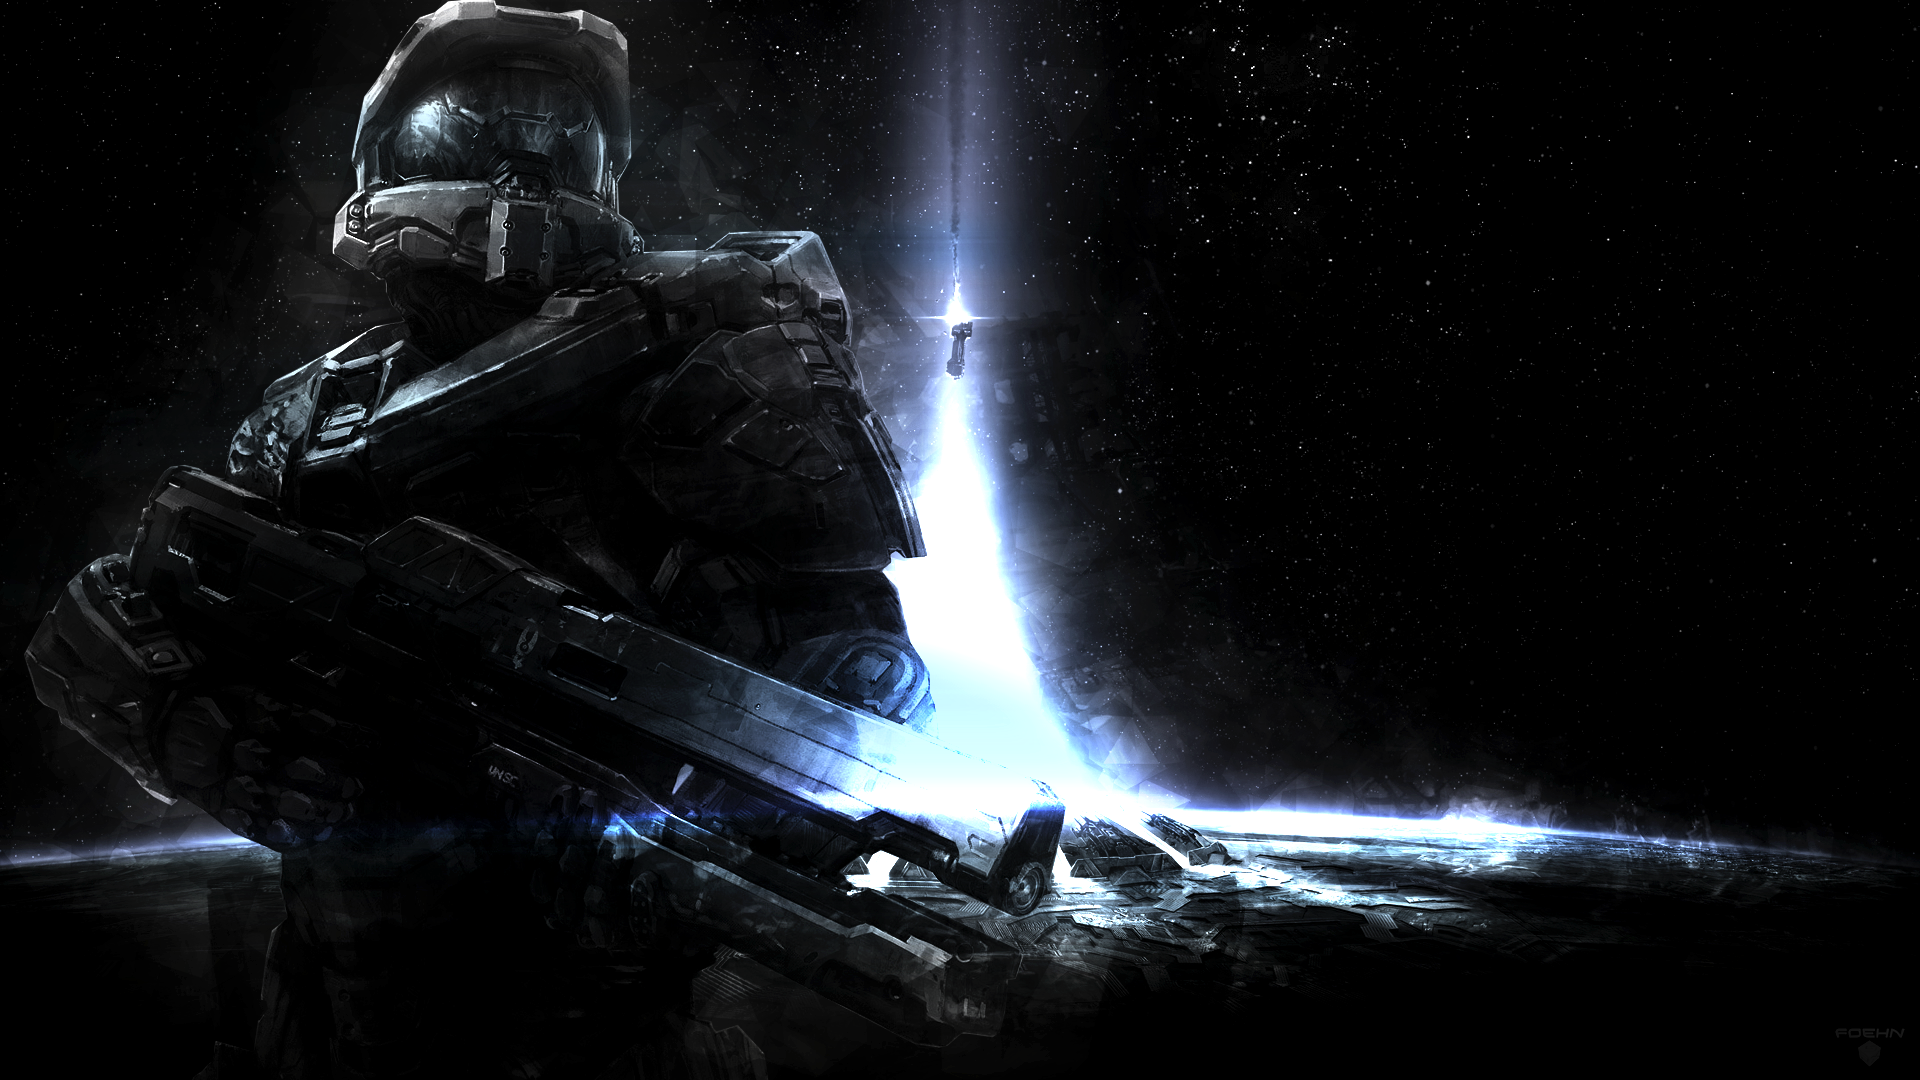 Download Halo 4 Wallpaper Wide Images #10662